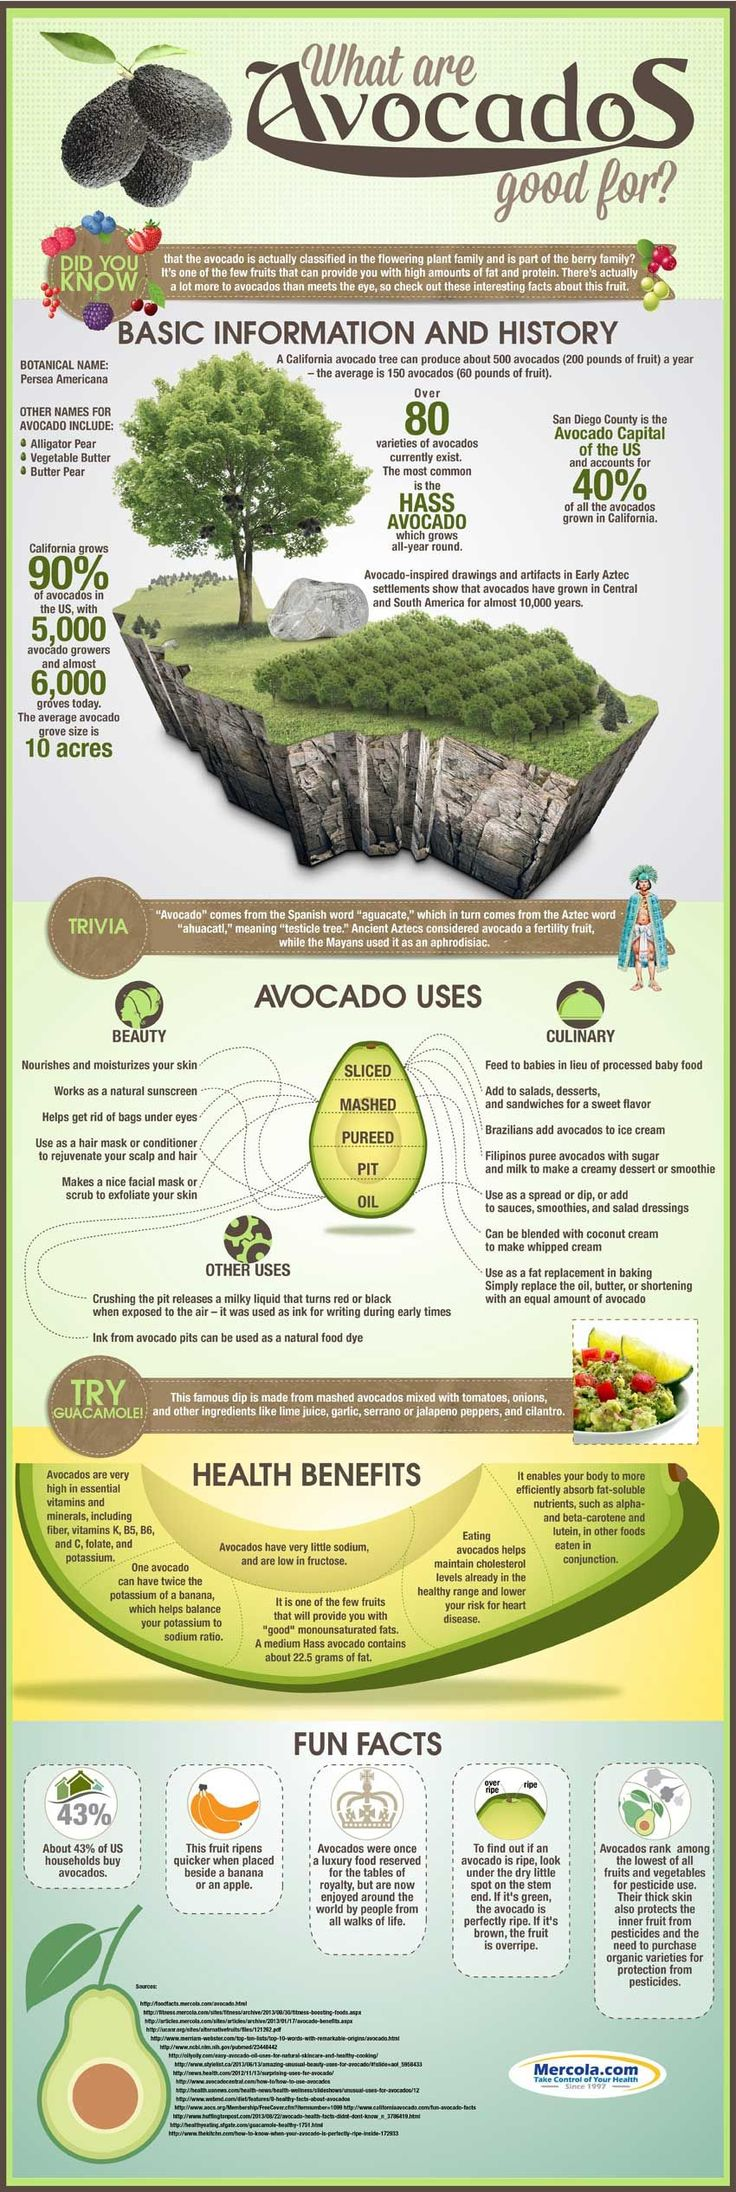 One of my favorite healthy fats - the avocado!